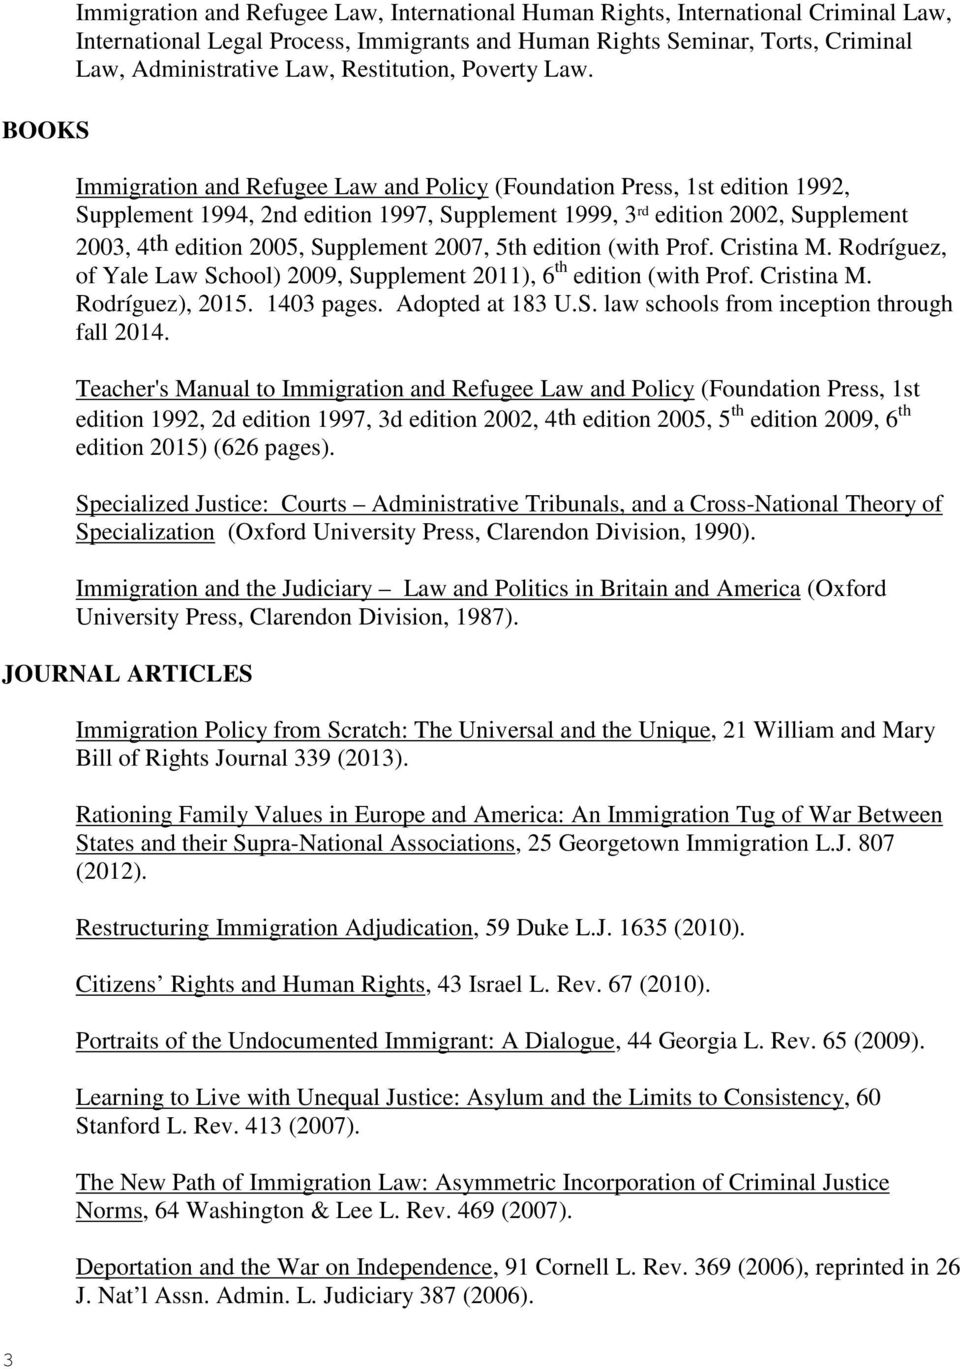 Immigration and Refugee Law and Policy (Foundation Press, 1st edition 1992, Supplement 1994, 2nd edition 1997, Supplement 1999, 3 rd edition 2002, Supplement 2003, 4th edition 2005, Supplement 2007,